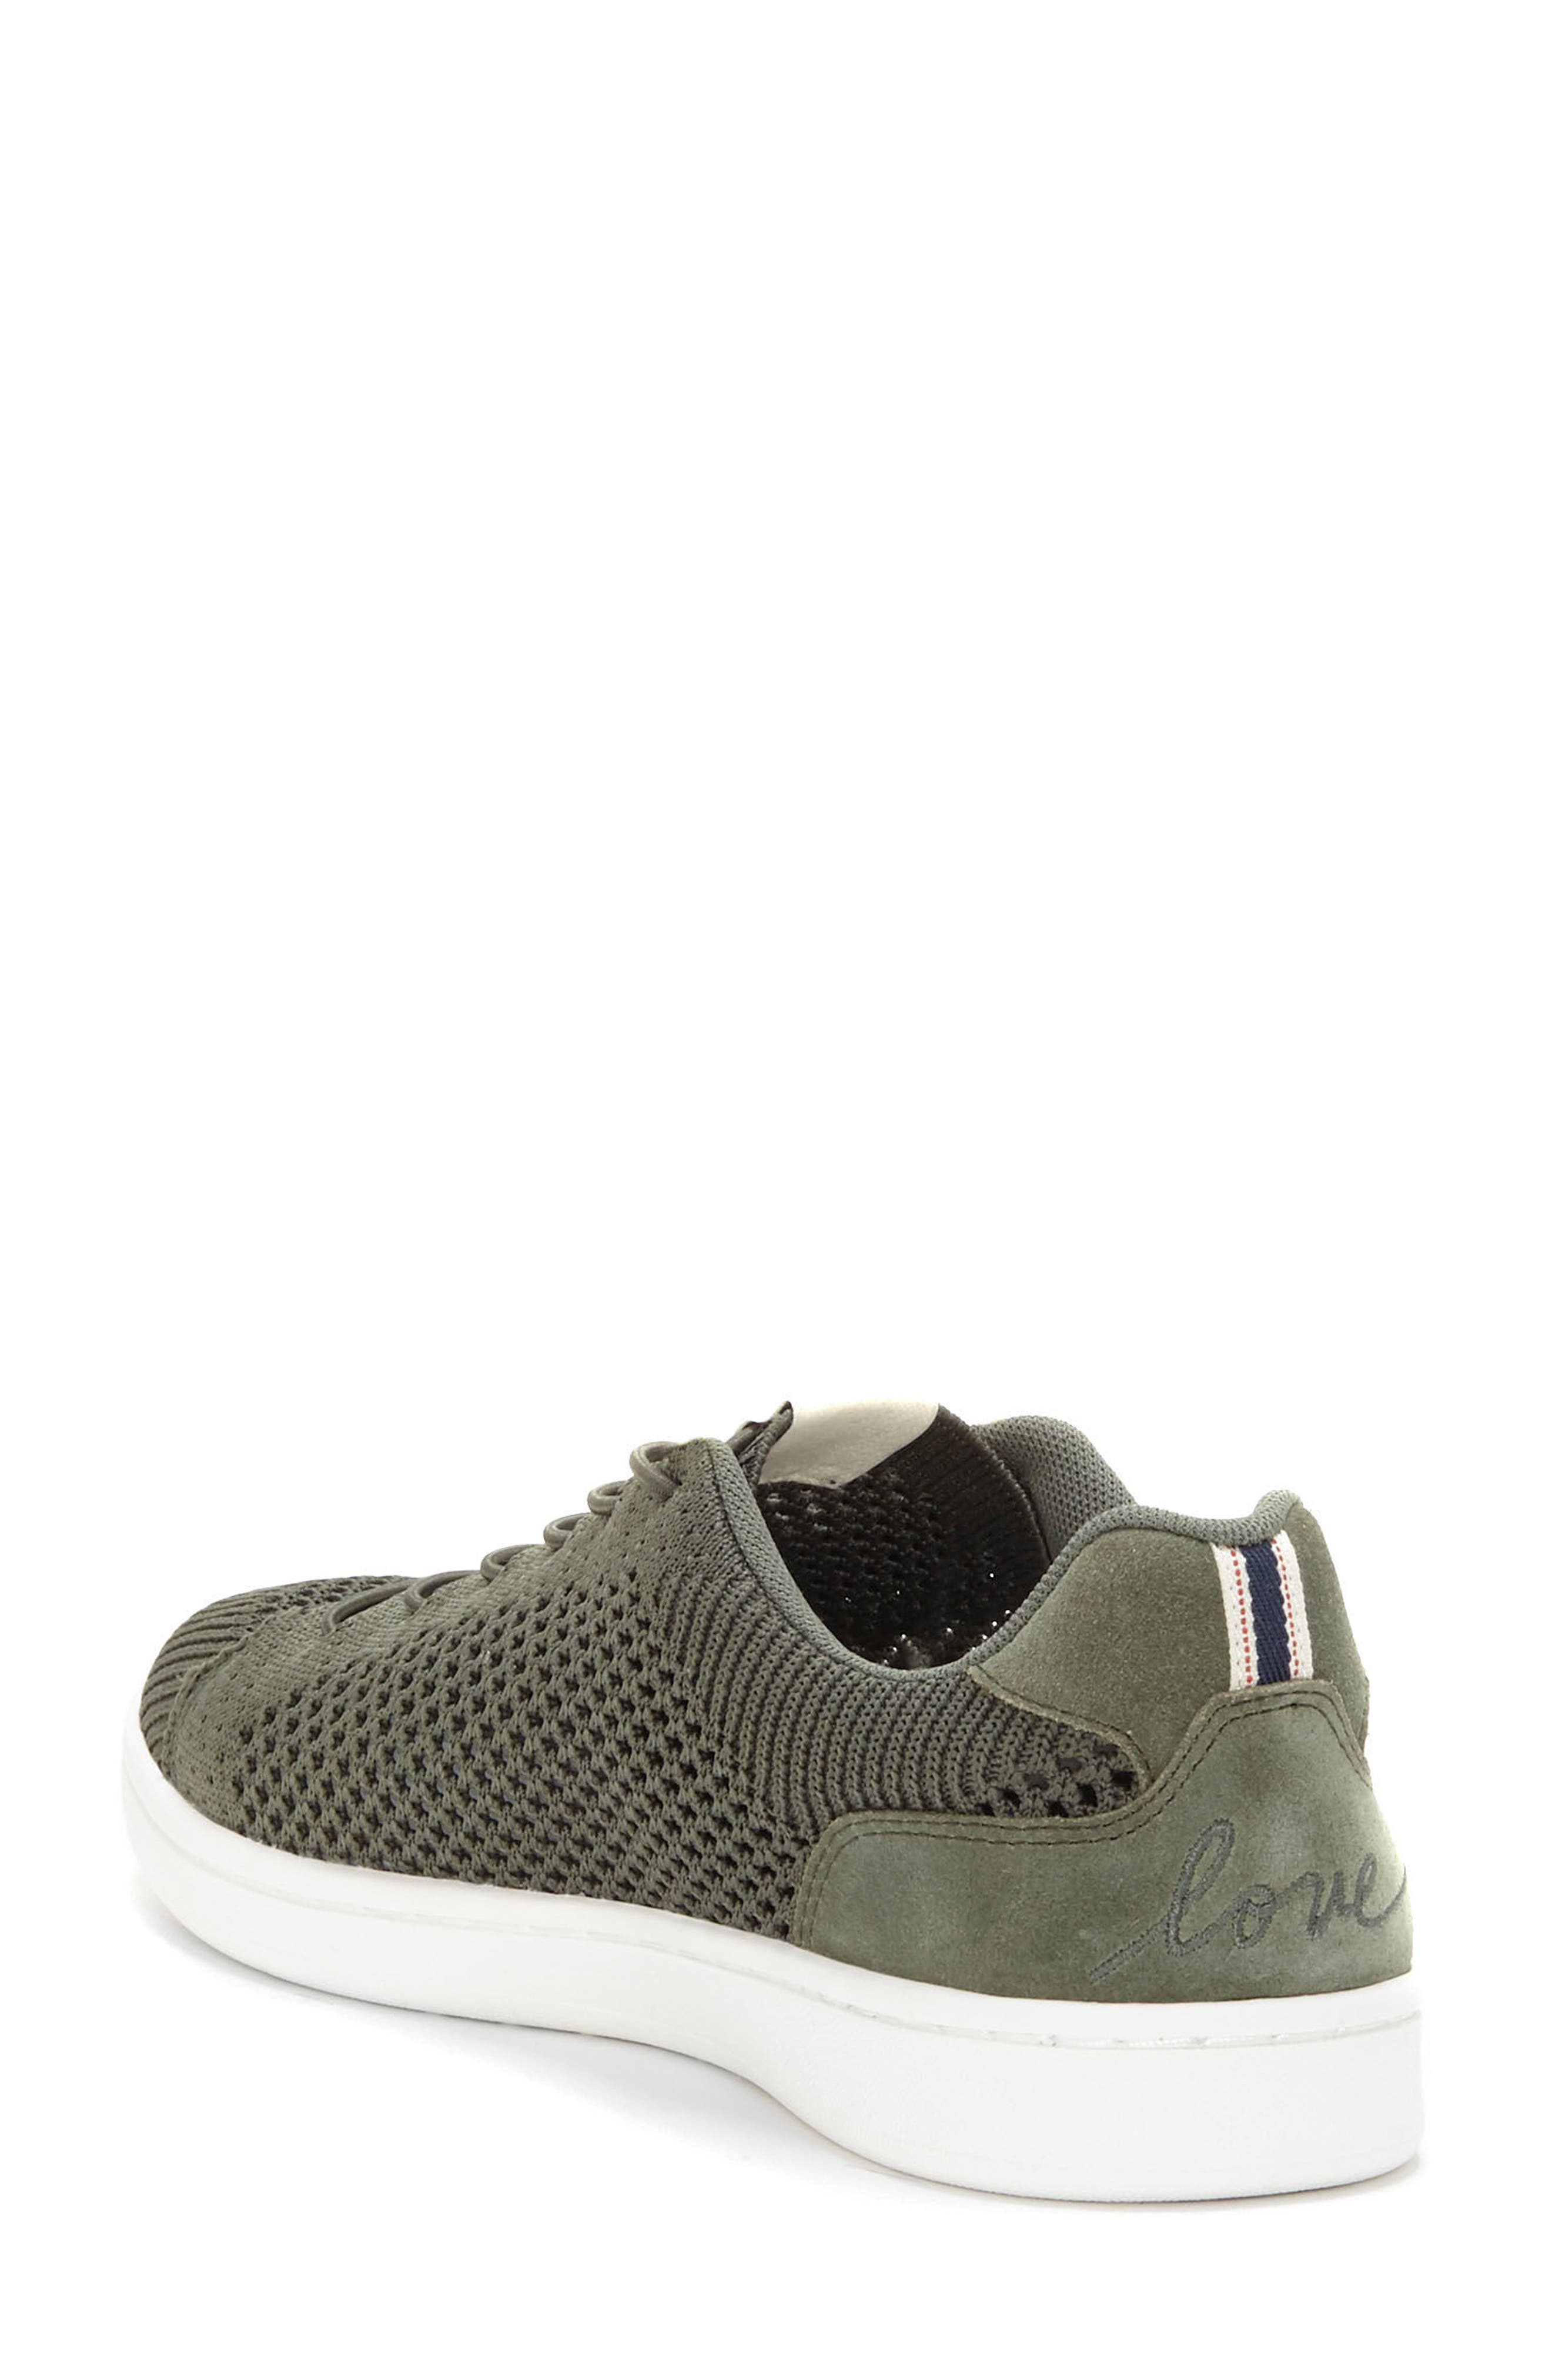 Casie Knit Sneaker,                             Alternate thumbnail 2, color,                             FOREST KNIT FABRIC